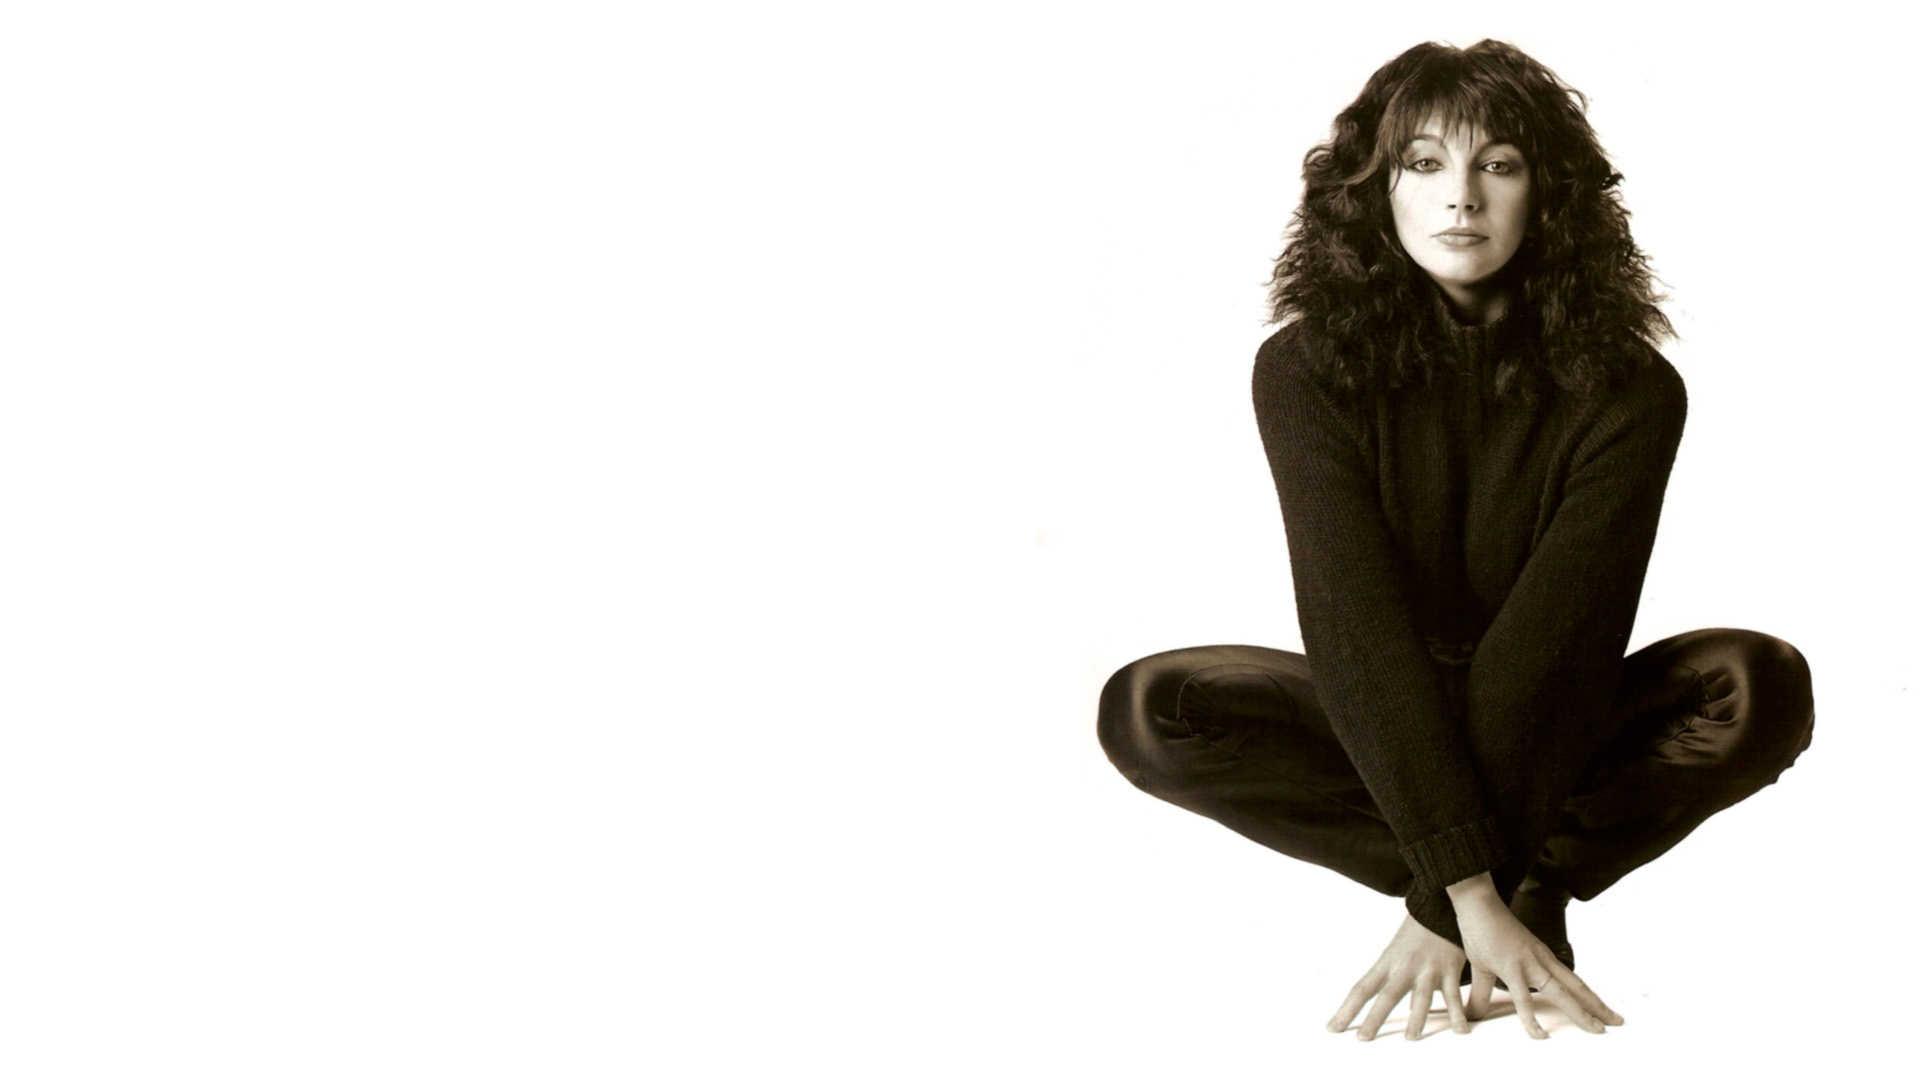 Guitar With Girl Hd Wallpaper 5 Kate Bush Hd Wallpapers Background Images Wallpaper